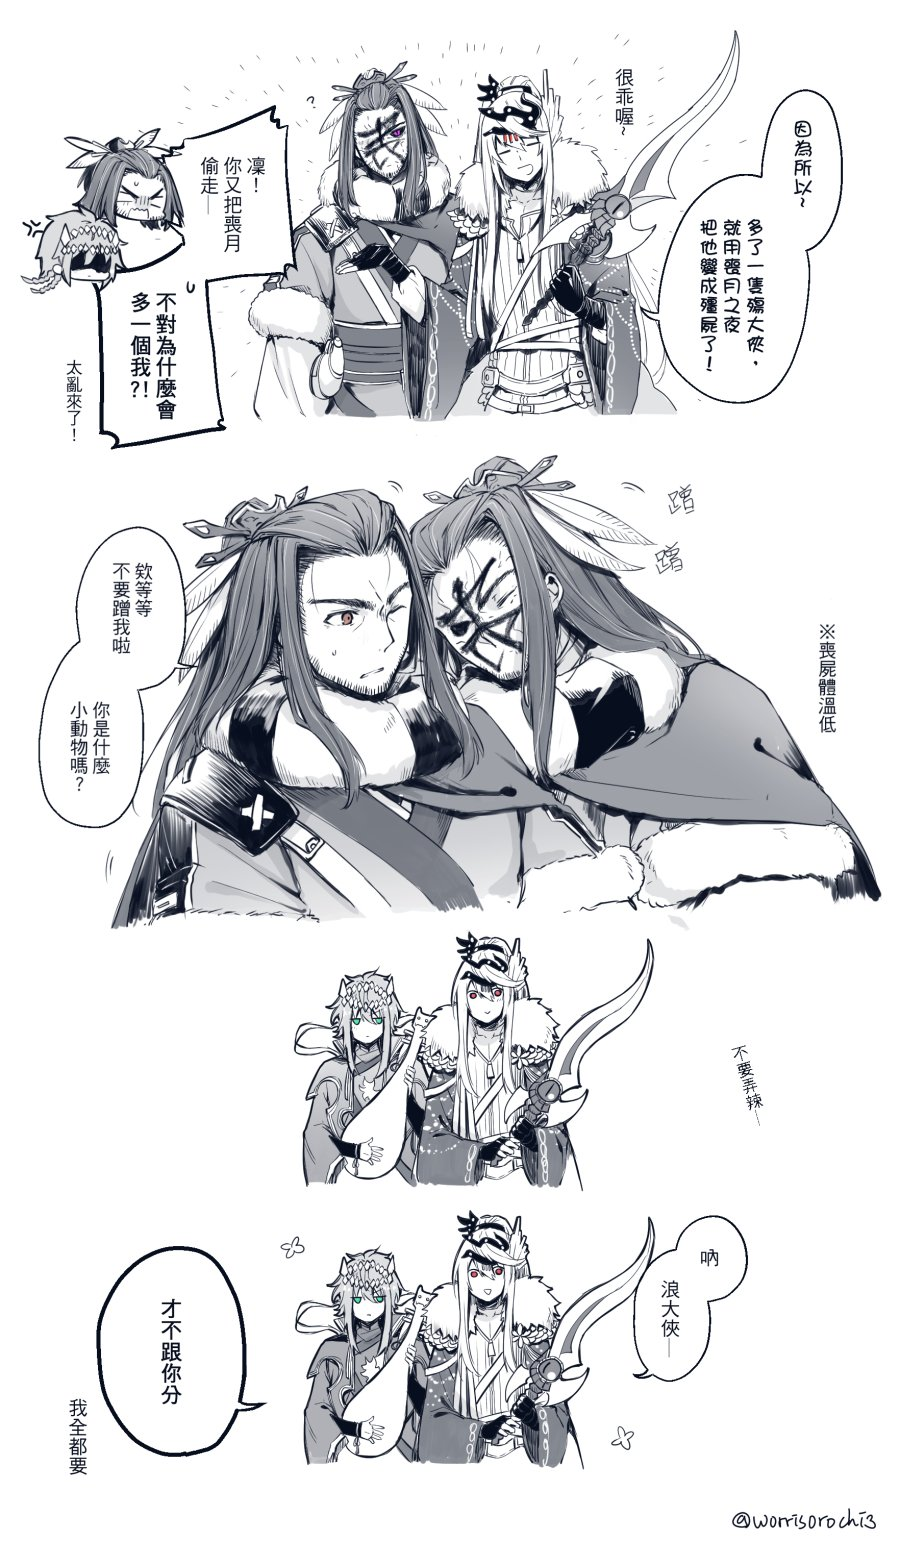 comic hair_ornament headwear highres instrument lang_wu_yao lin_xue_ya long_hair monochrome multiple_persona pipe shang_bu_huan sword thunderbolt_fantasy translation_request twitter_username weapon worrisorochi yin_lei_ling_ya